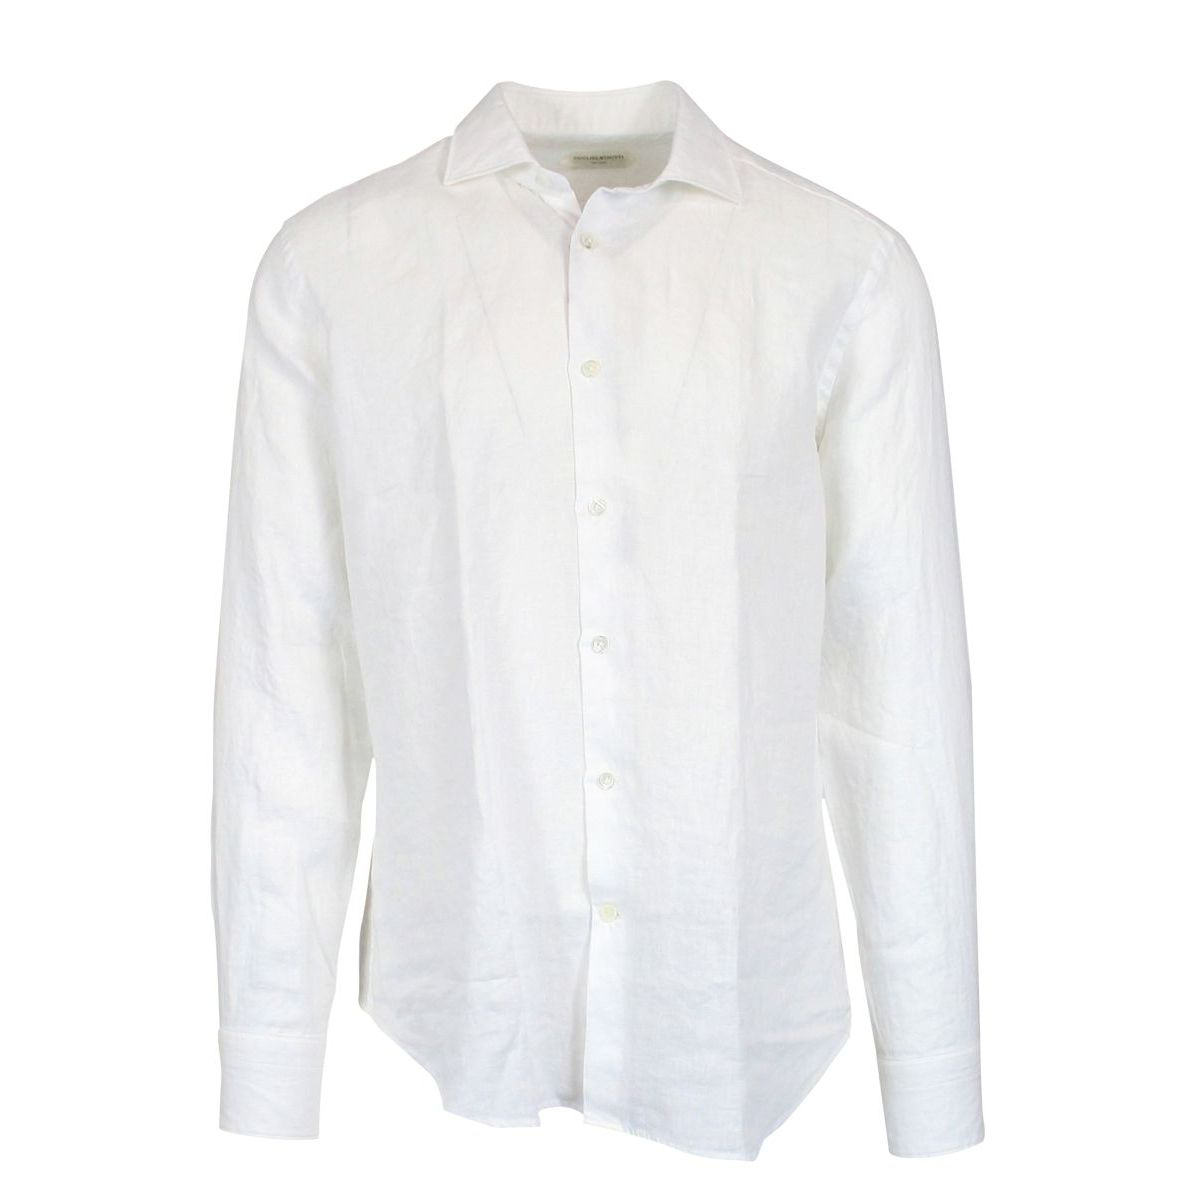 Custom linen shirt with French collar White Guglilminotti